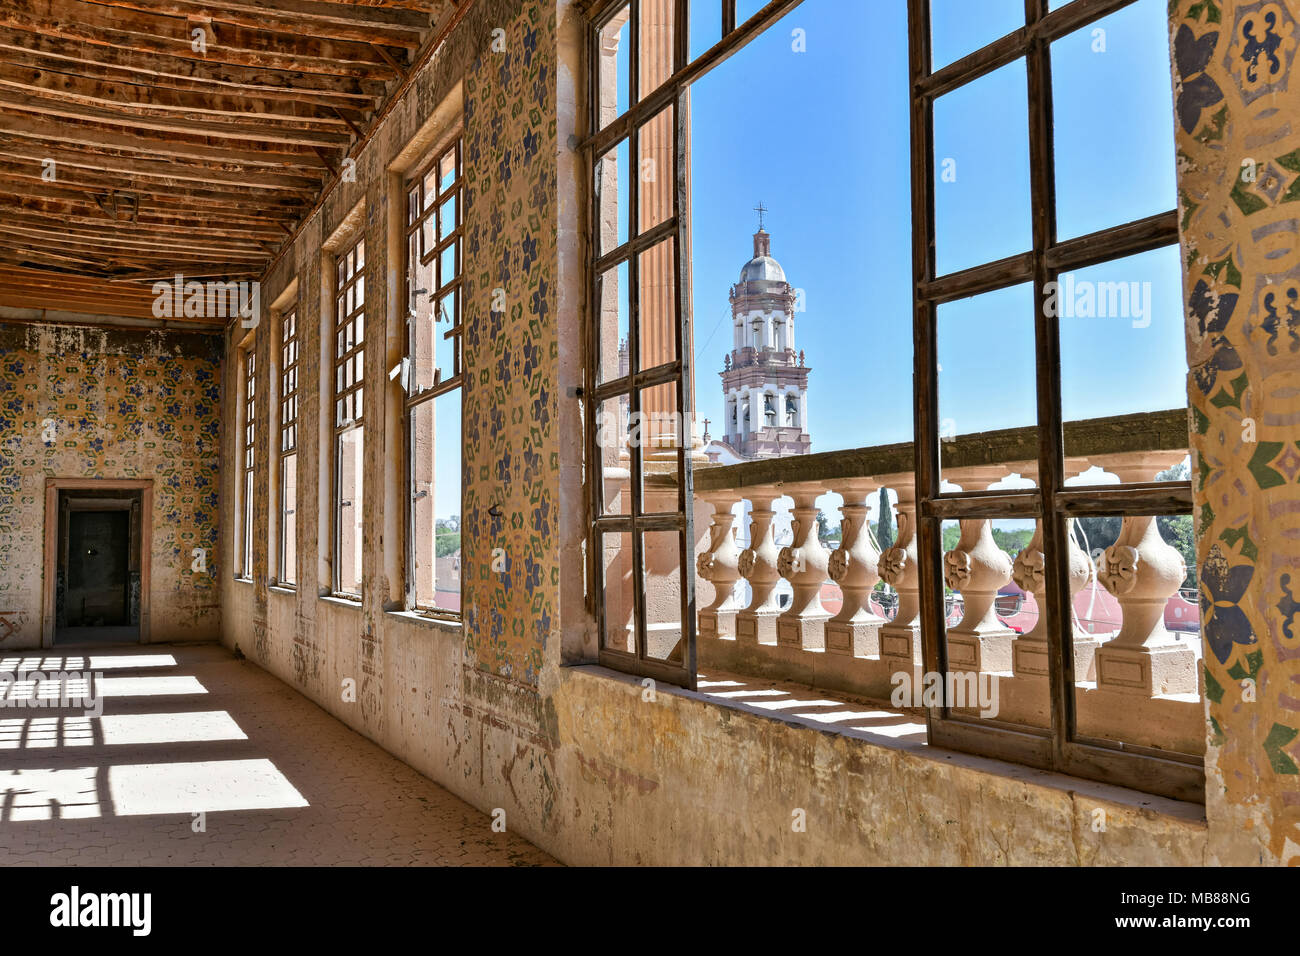 A derelict and crumbling room in the fading Hacienda de Jaral de Berrio in Jaral de Berrios, Guanajuato, Mexico. The abandoned Jaral de Berrio hacienda was once the largest in Mexico and housed over 6,000 people on the property and is credited with creating Mescal. - Stock Image